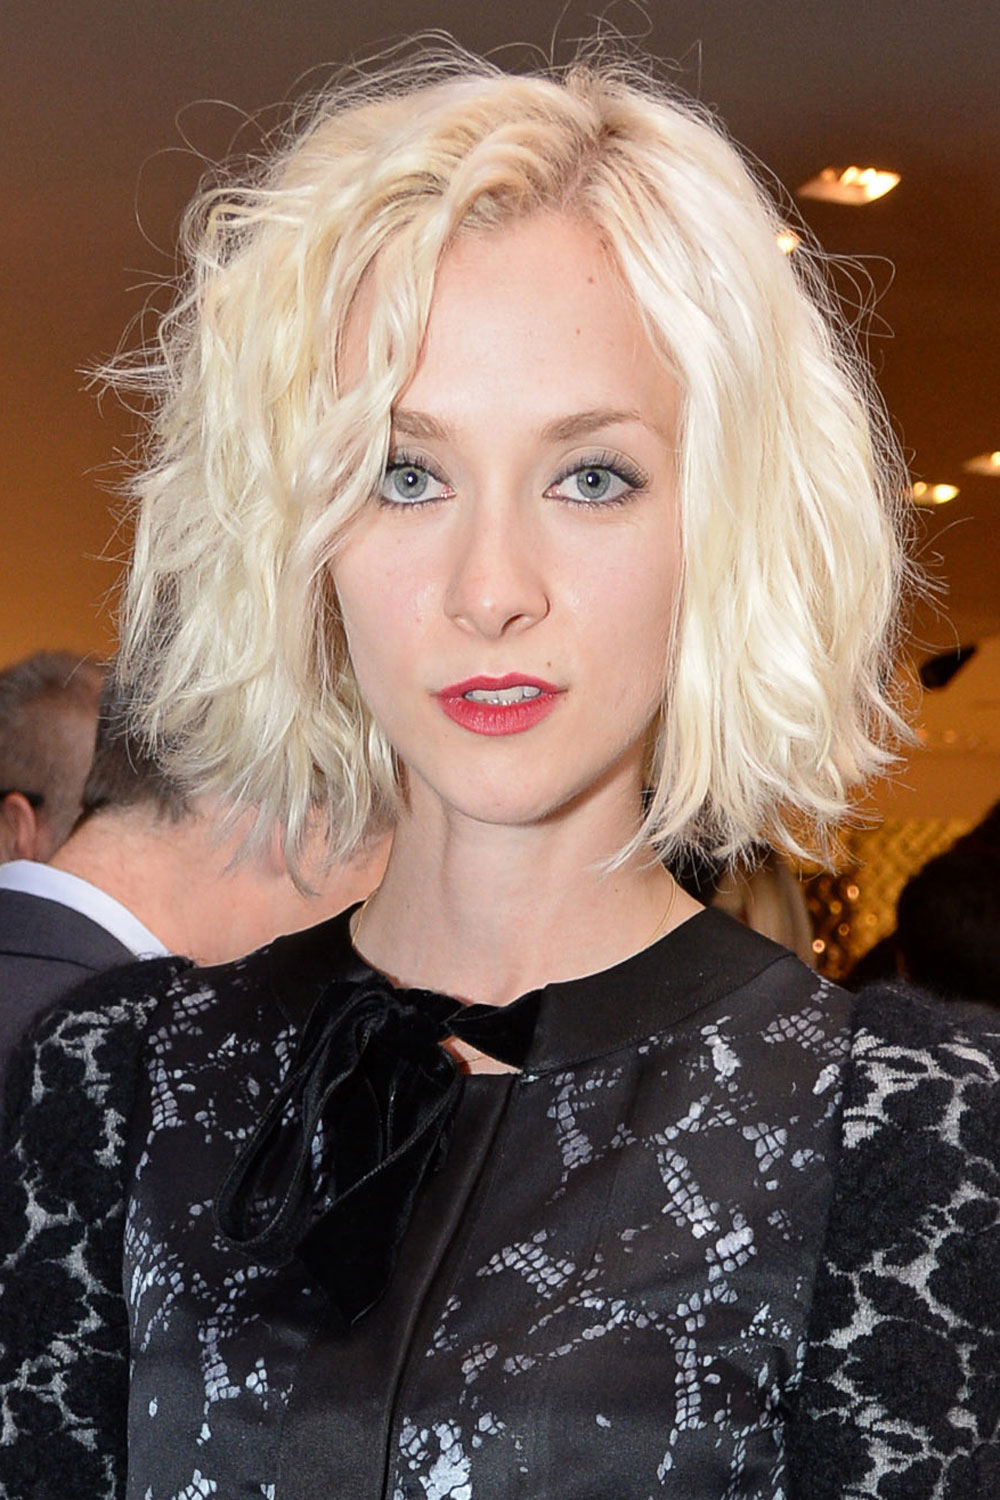 blonde hairstyles: the marie claire guide to getting it just right